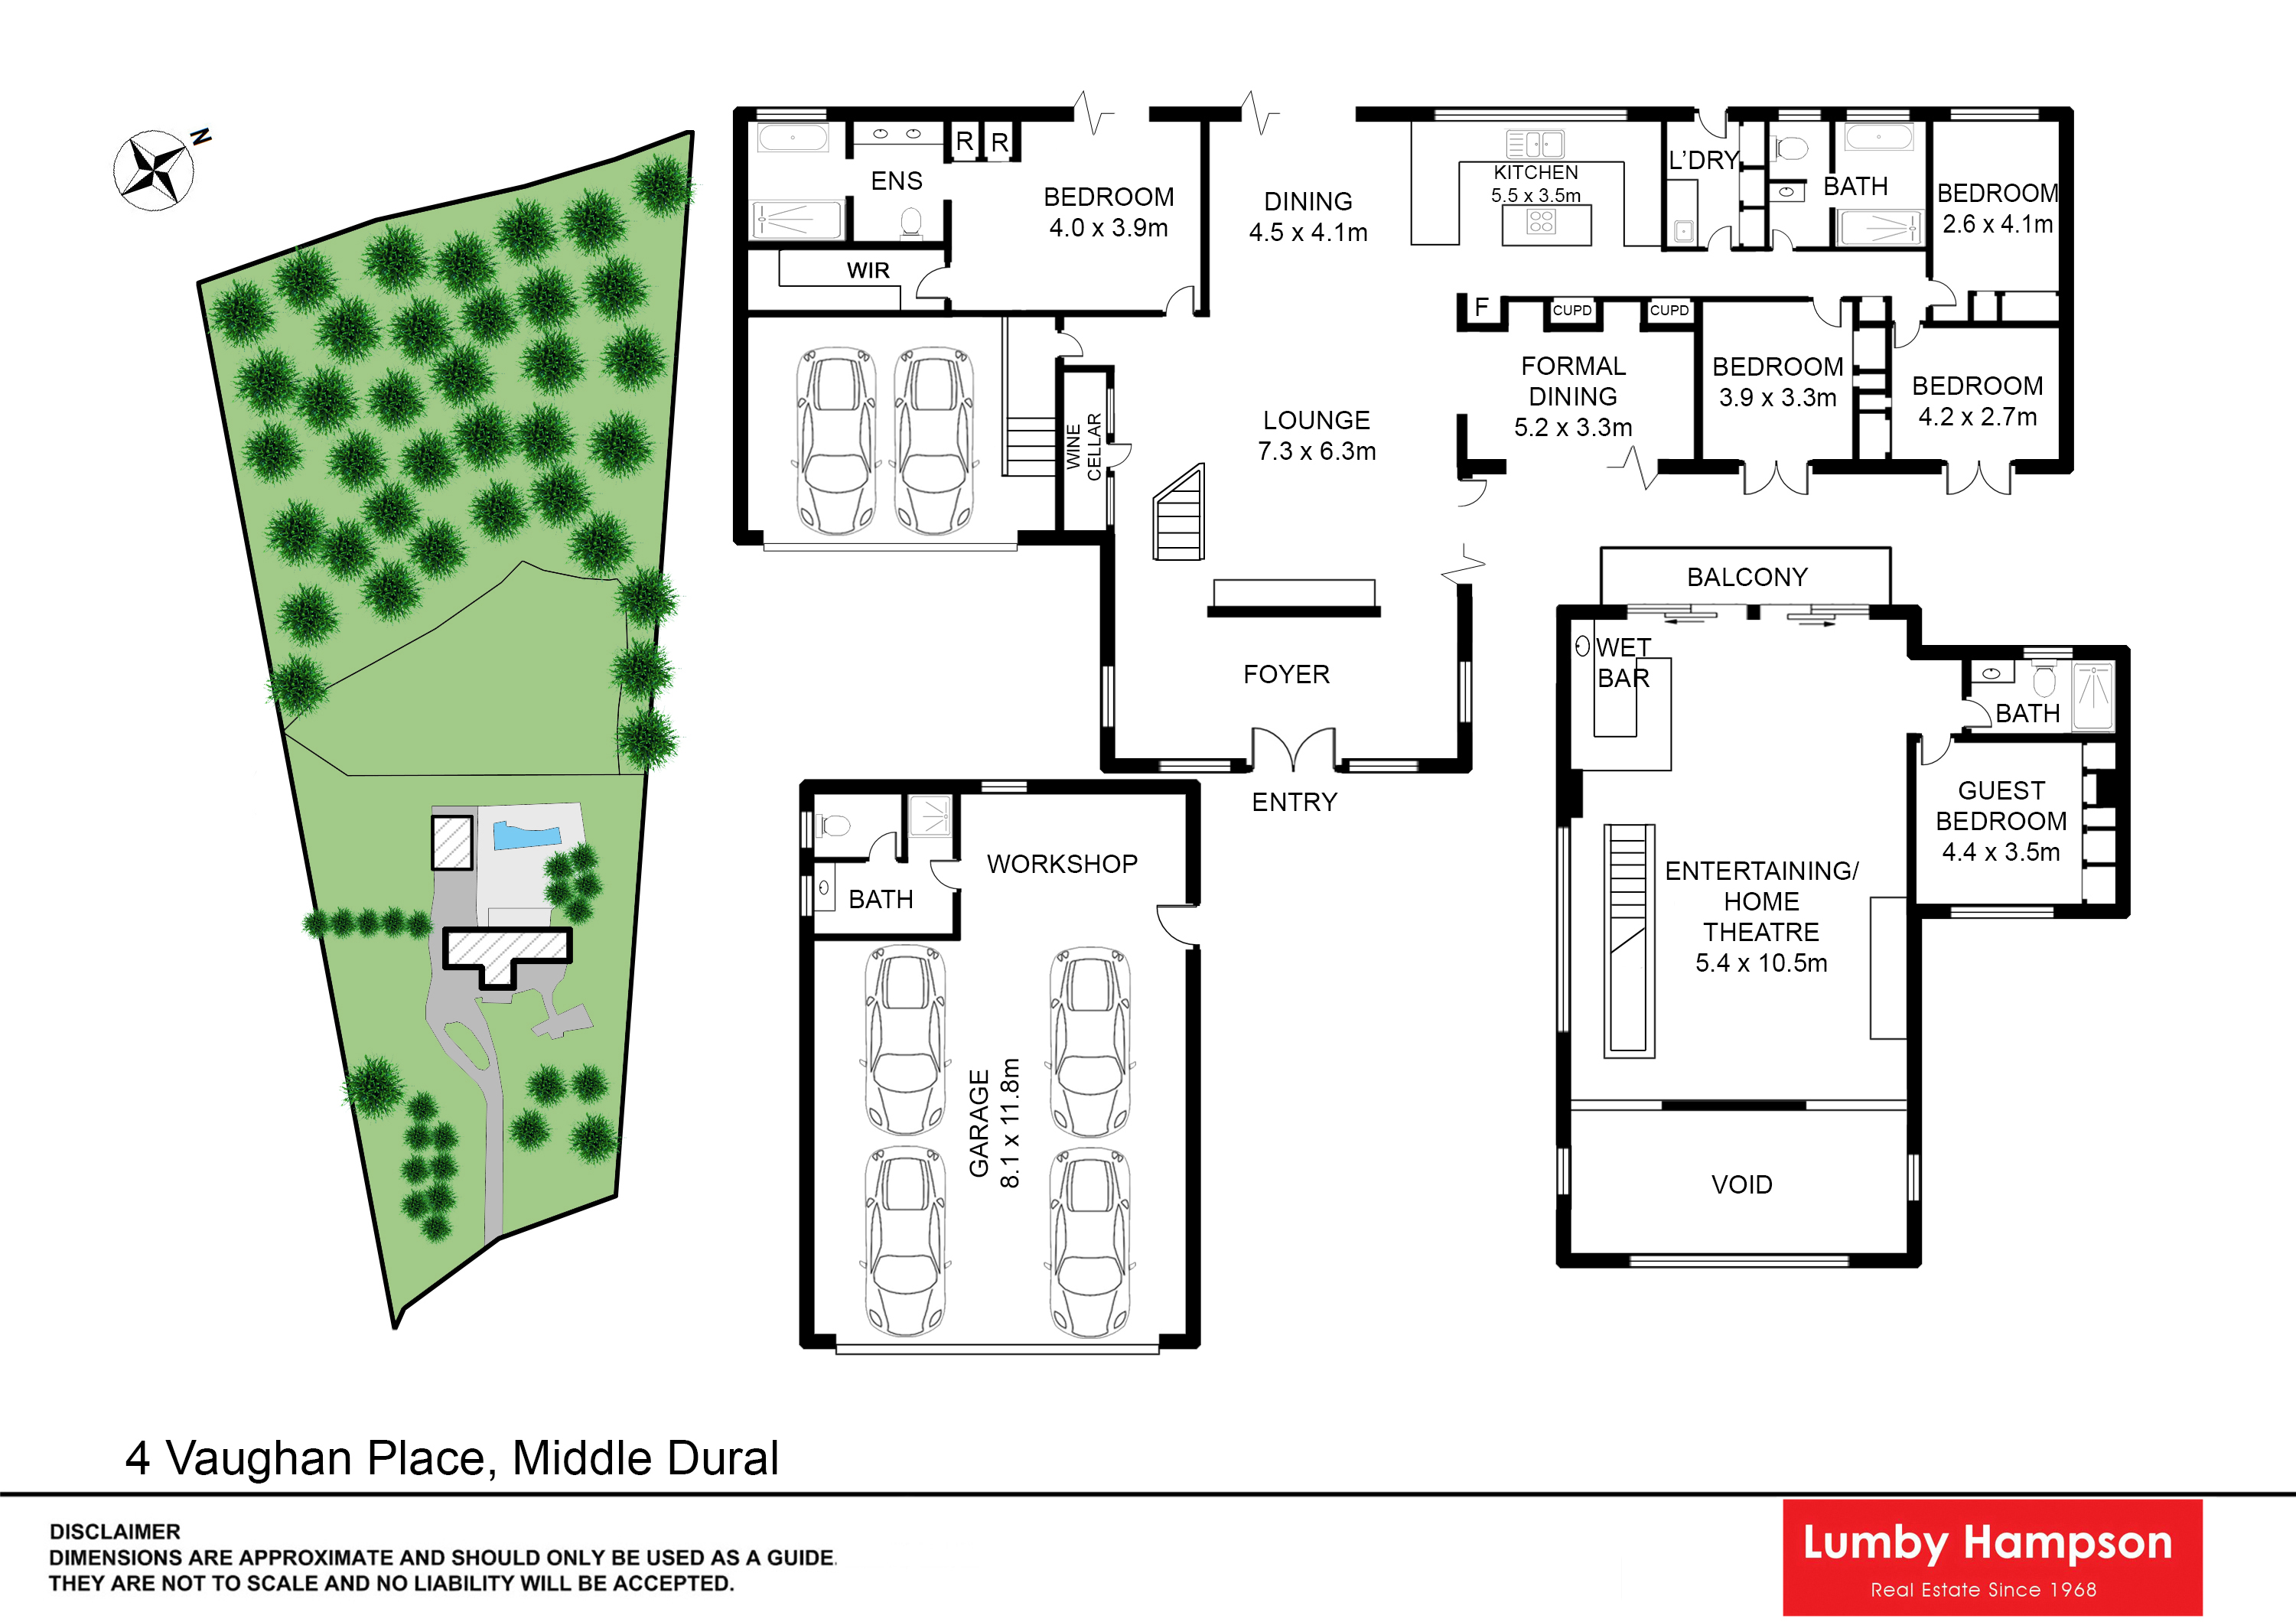 Lumby hampson 4 vaughan place dural nsw 2158 for 15 st judes terrace dural